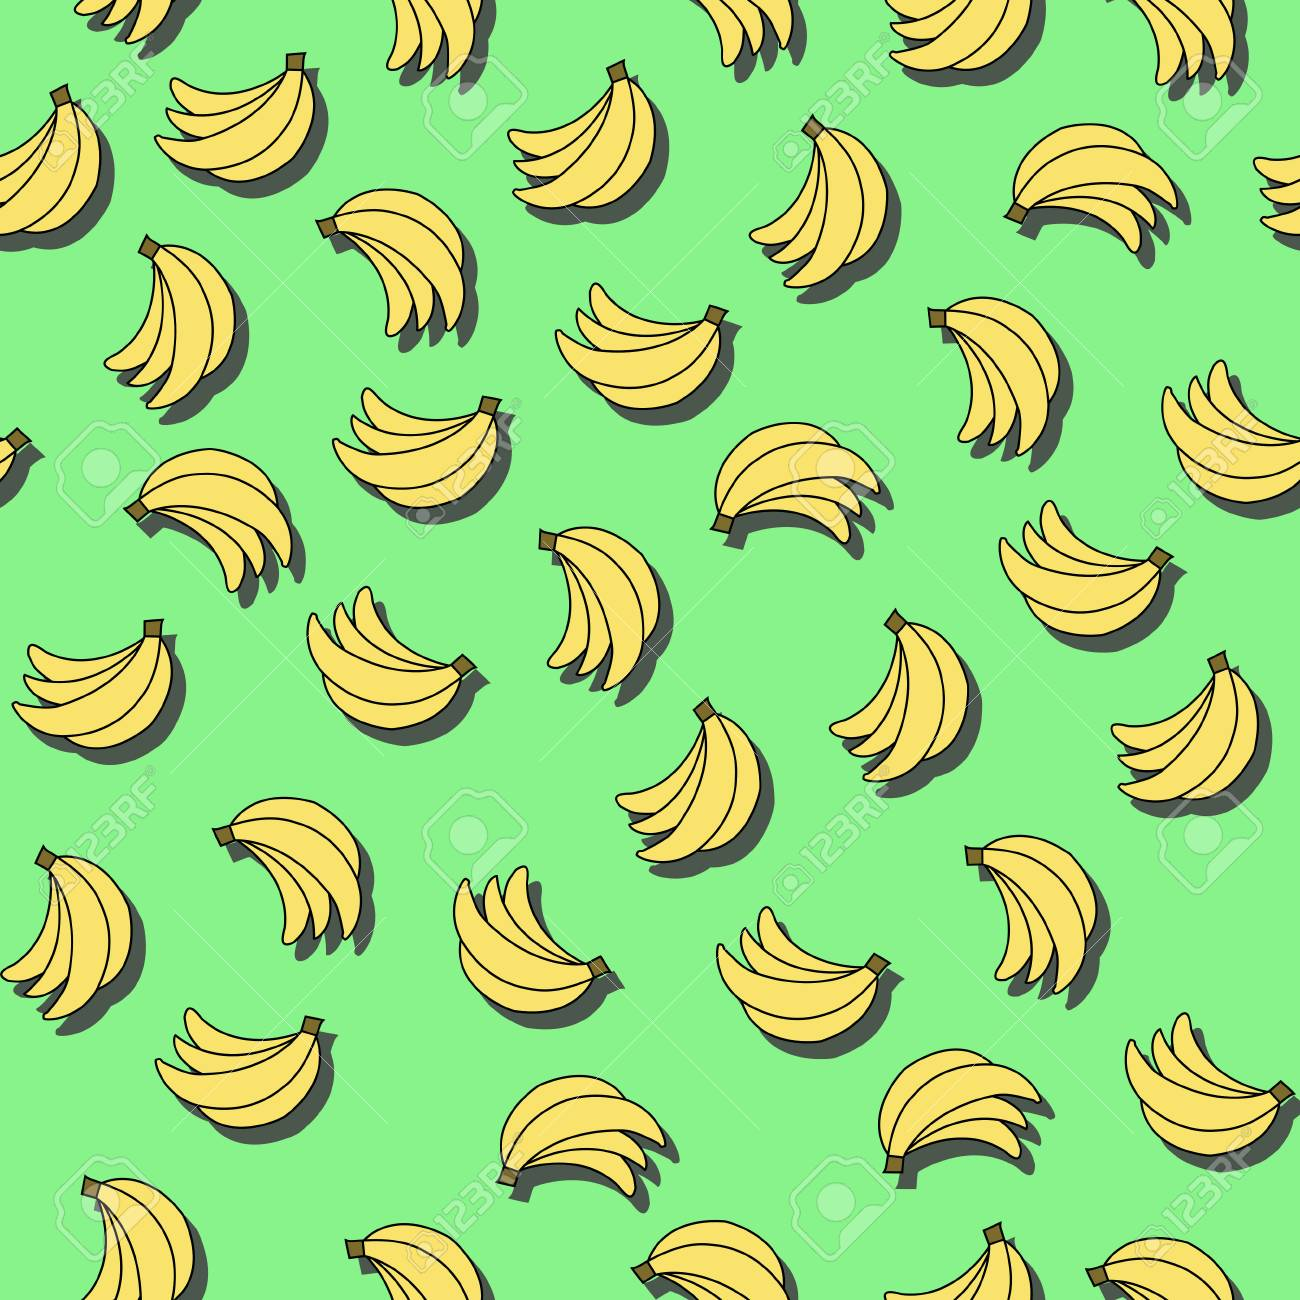 Seamless Pattern With Bananas On Green Background Can Be Used Royalty Free Cliparts Vectors And Stock Illustration Image 84802090